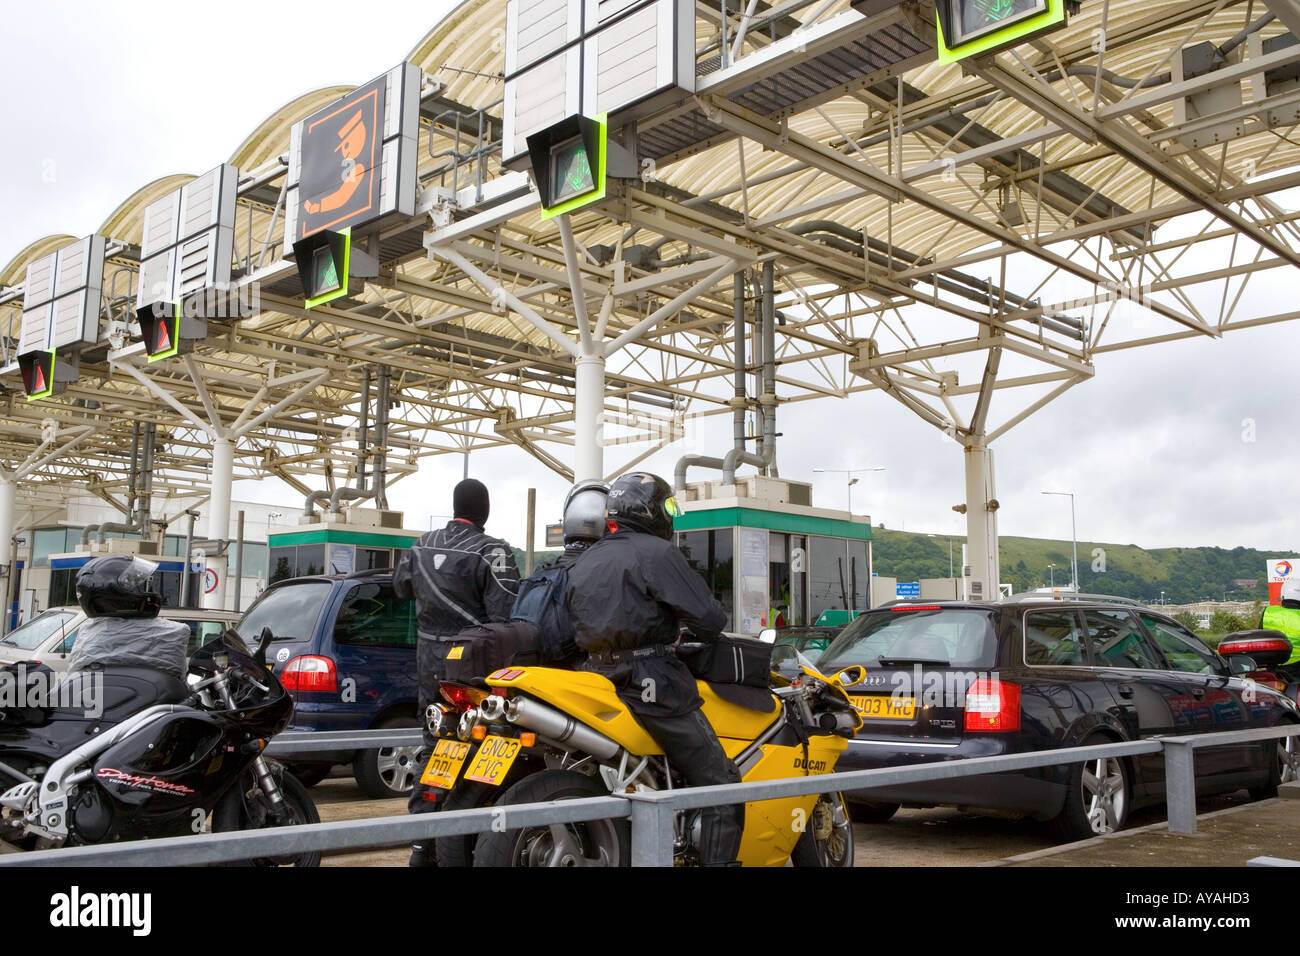 Motorists And Motorcyclists Queue Up To Buy Tickets For Eurotunnel